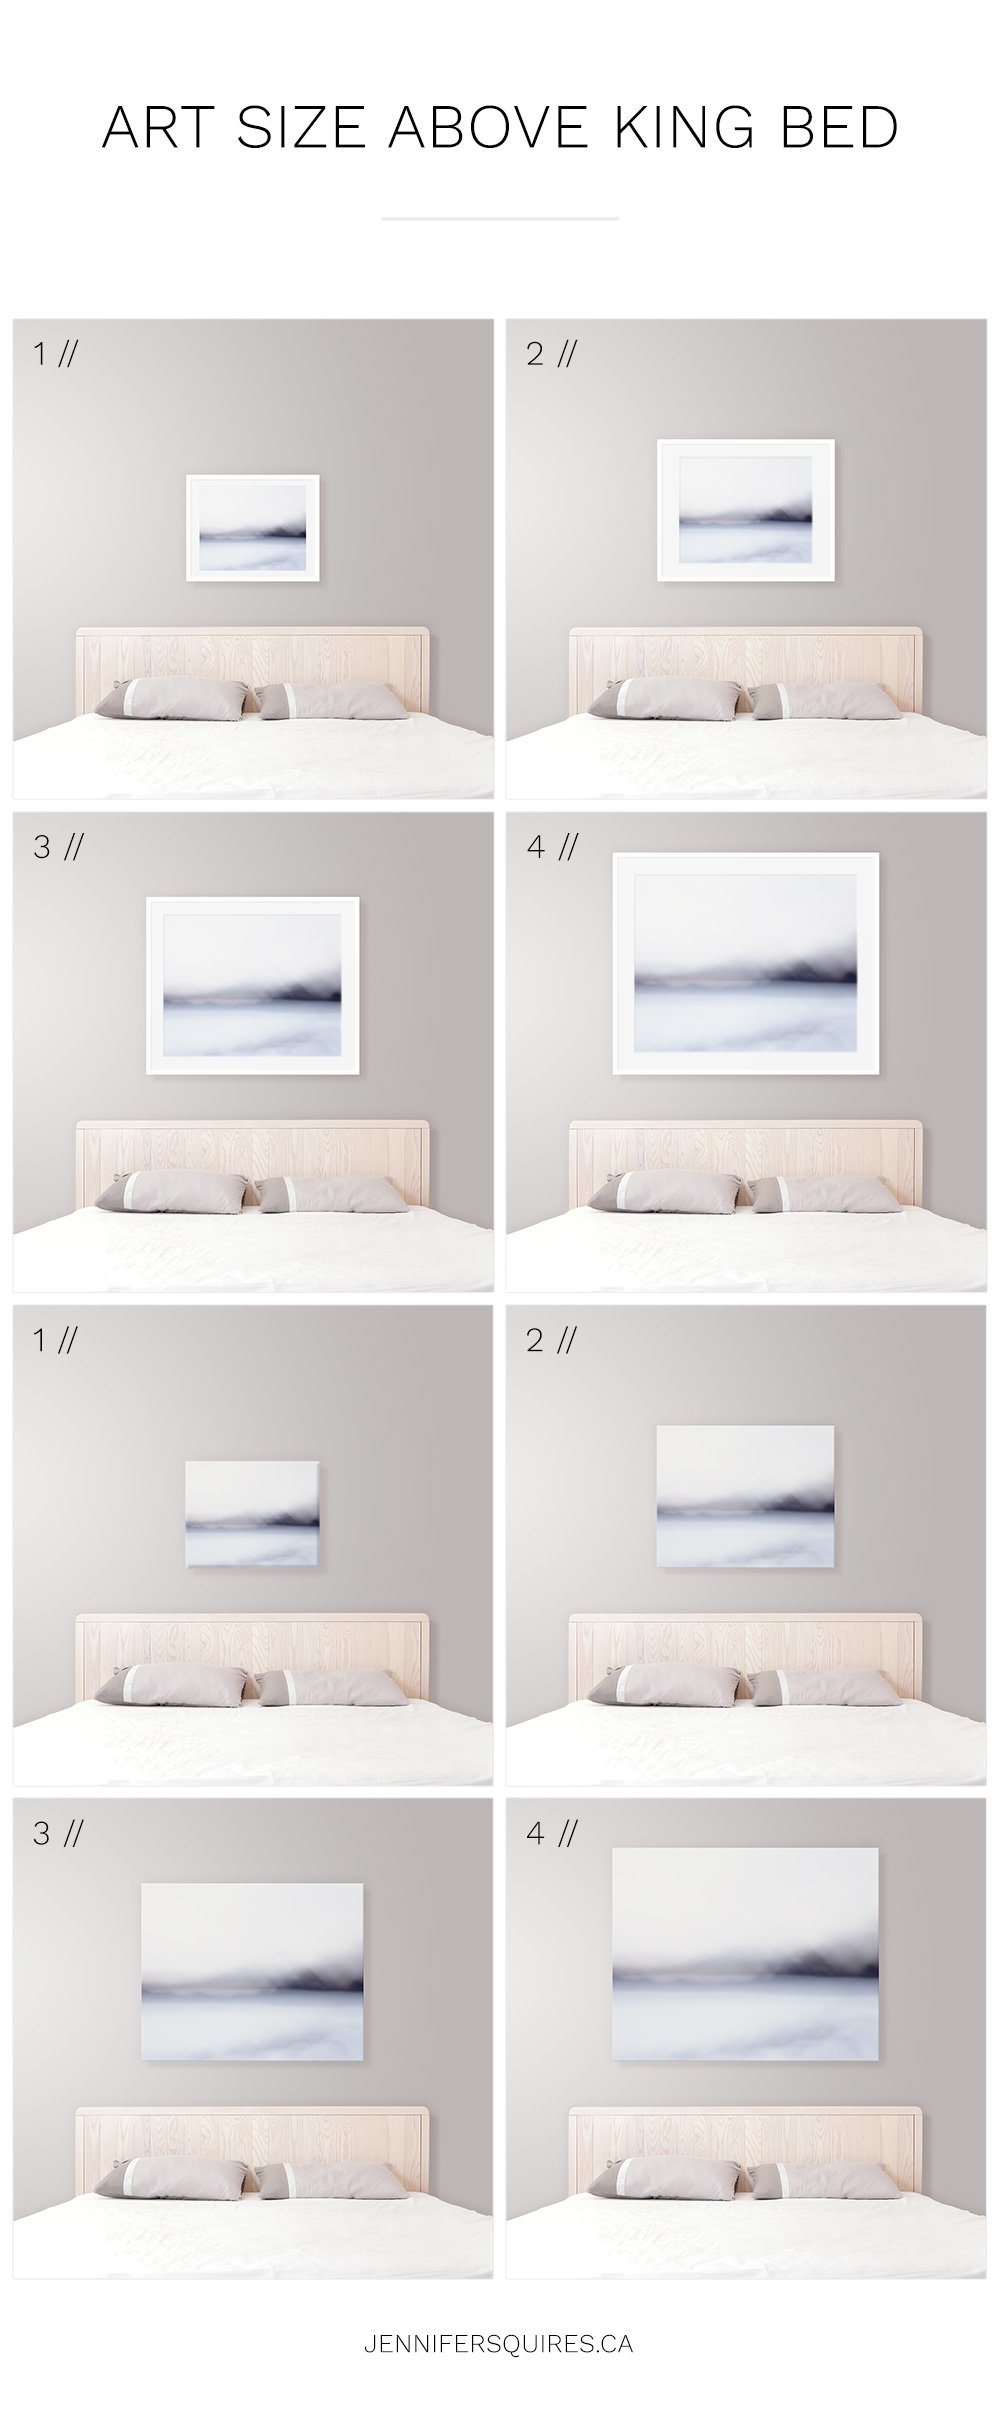 Australia King Size Bed Dimensions Ideal Art Size Above King Bed Modern Coastal Bedroom Decor Tips